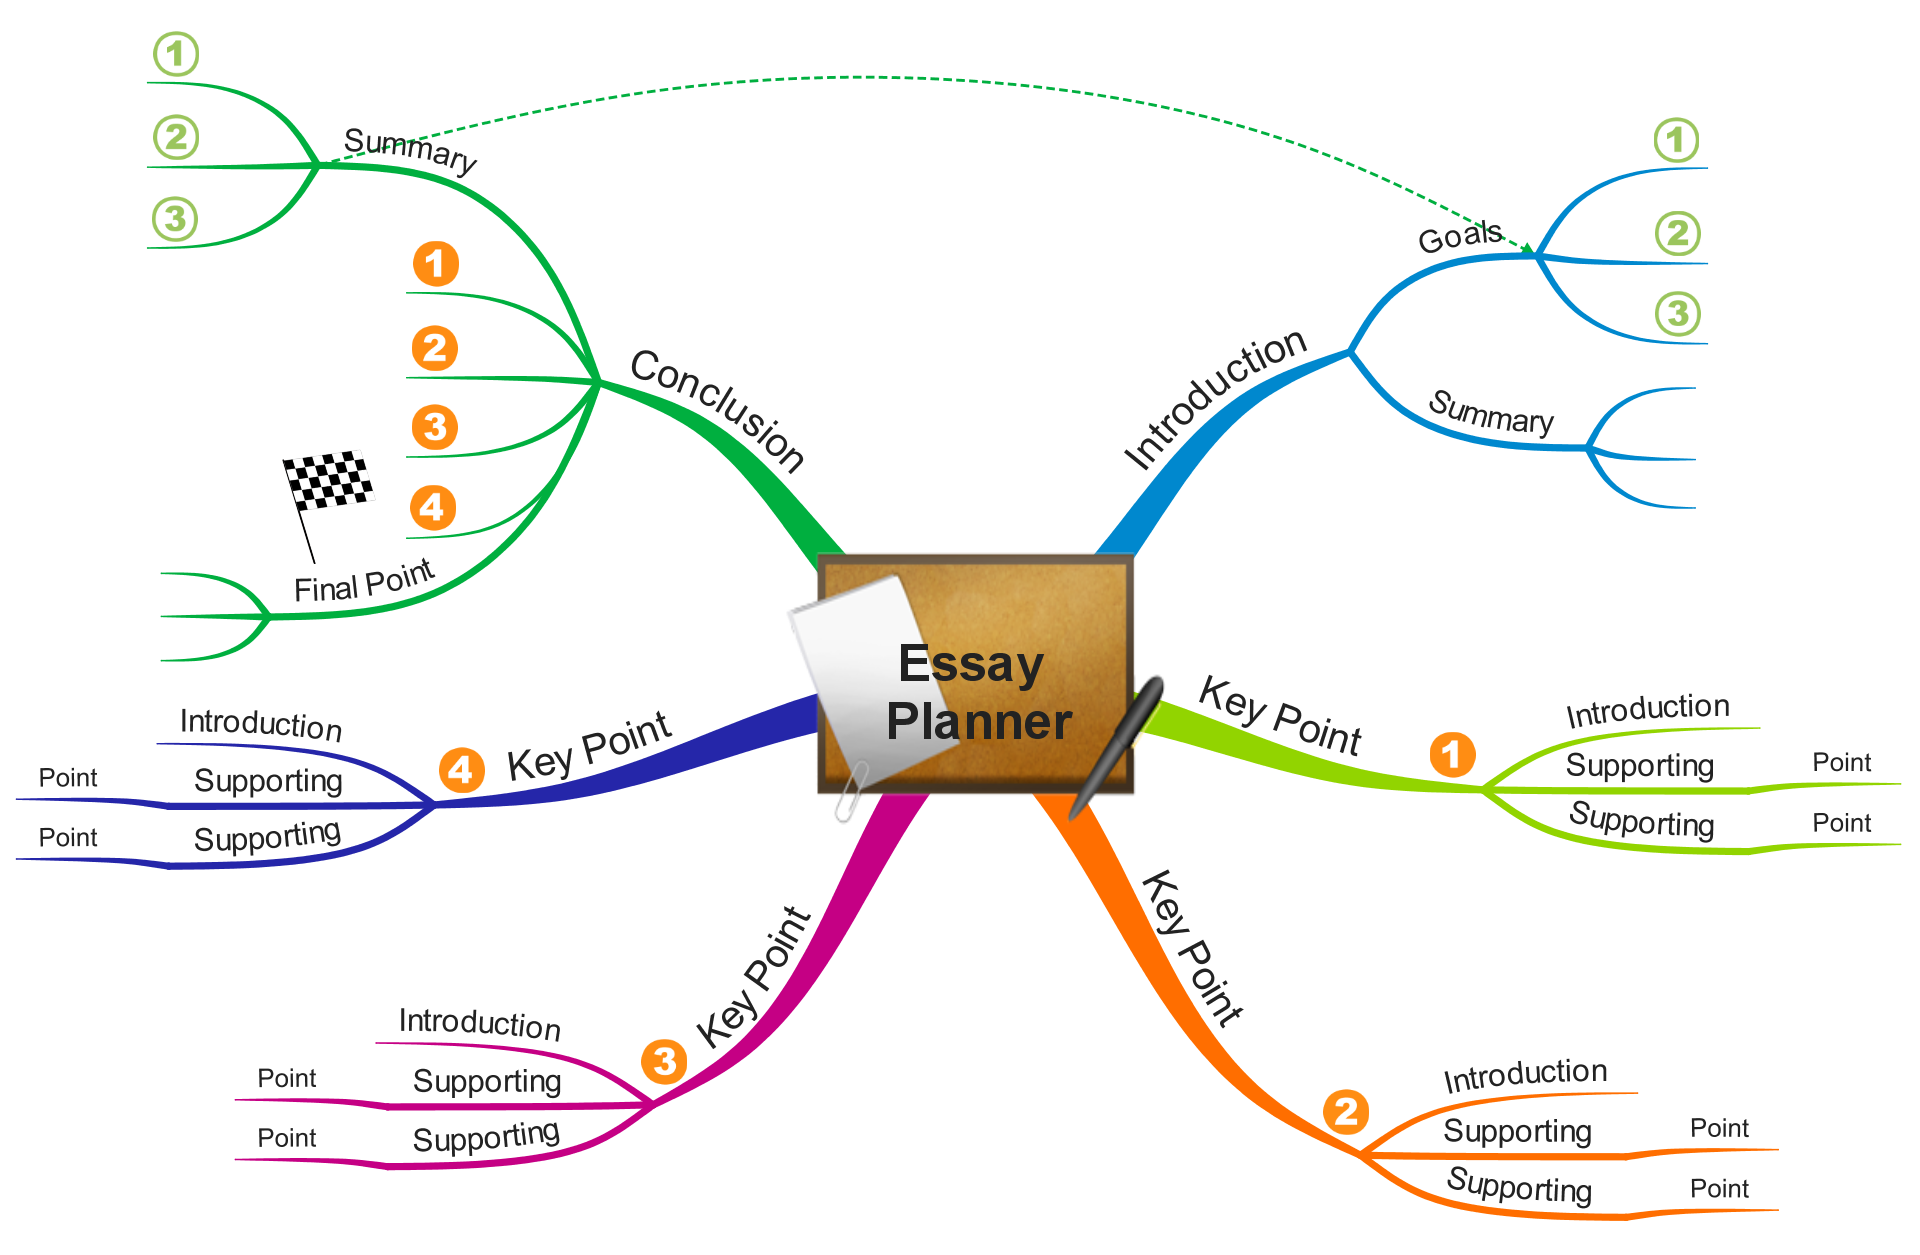 essay mapping best ideas about mind map mind maps how to plan  essay mapping tools how to plan an essay using a mind map steps pictures tbe essay